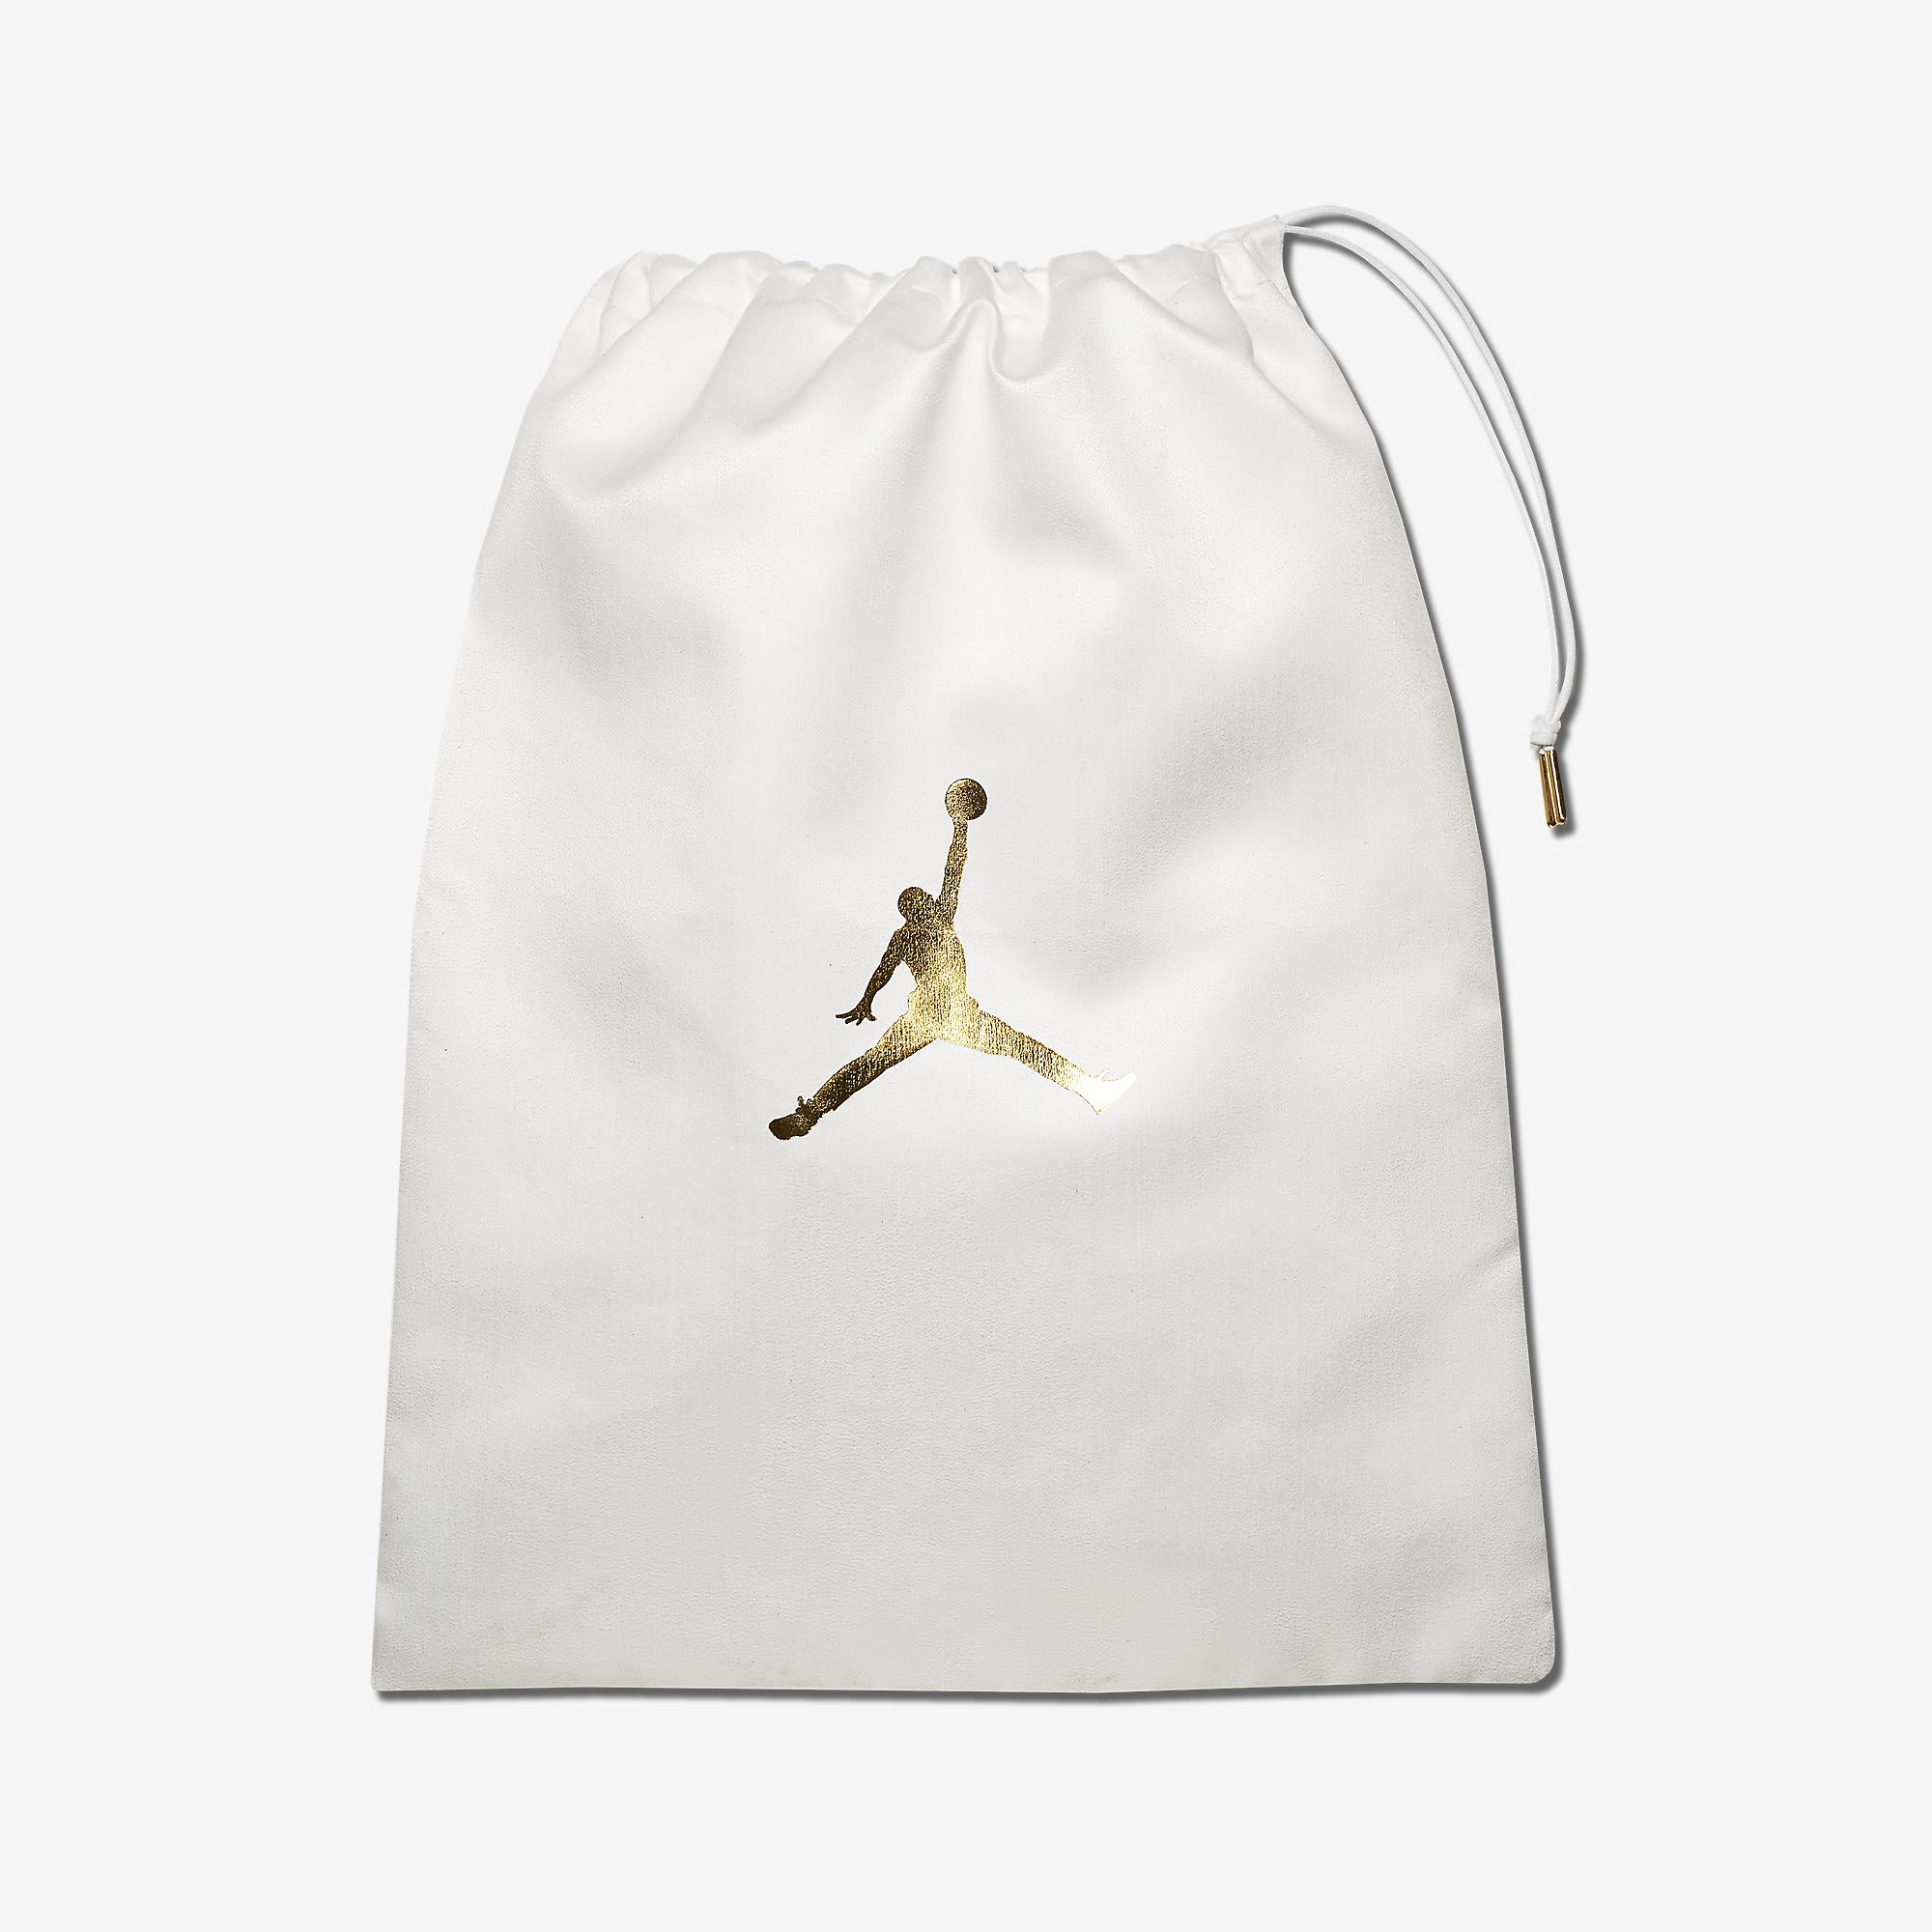 Wings Air Jordan 1 Dustbag